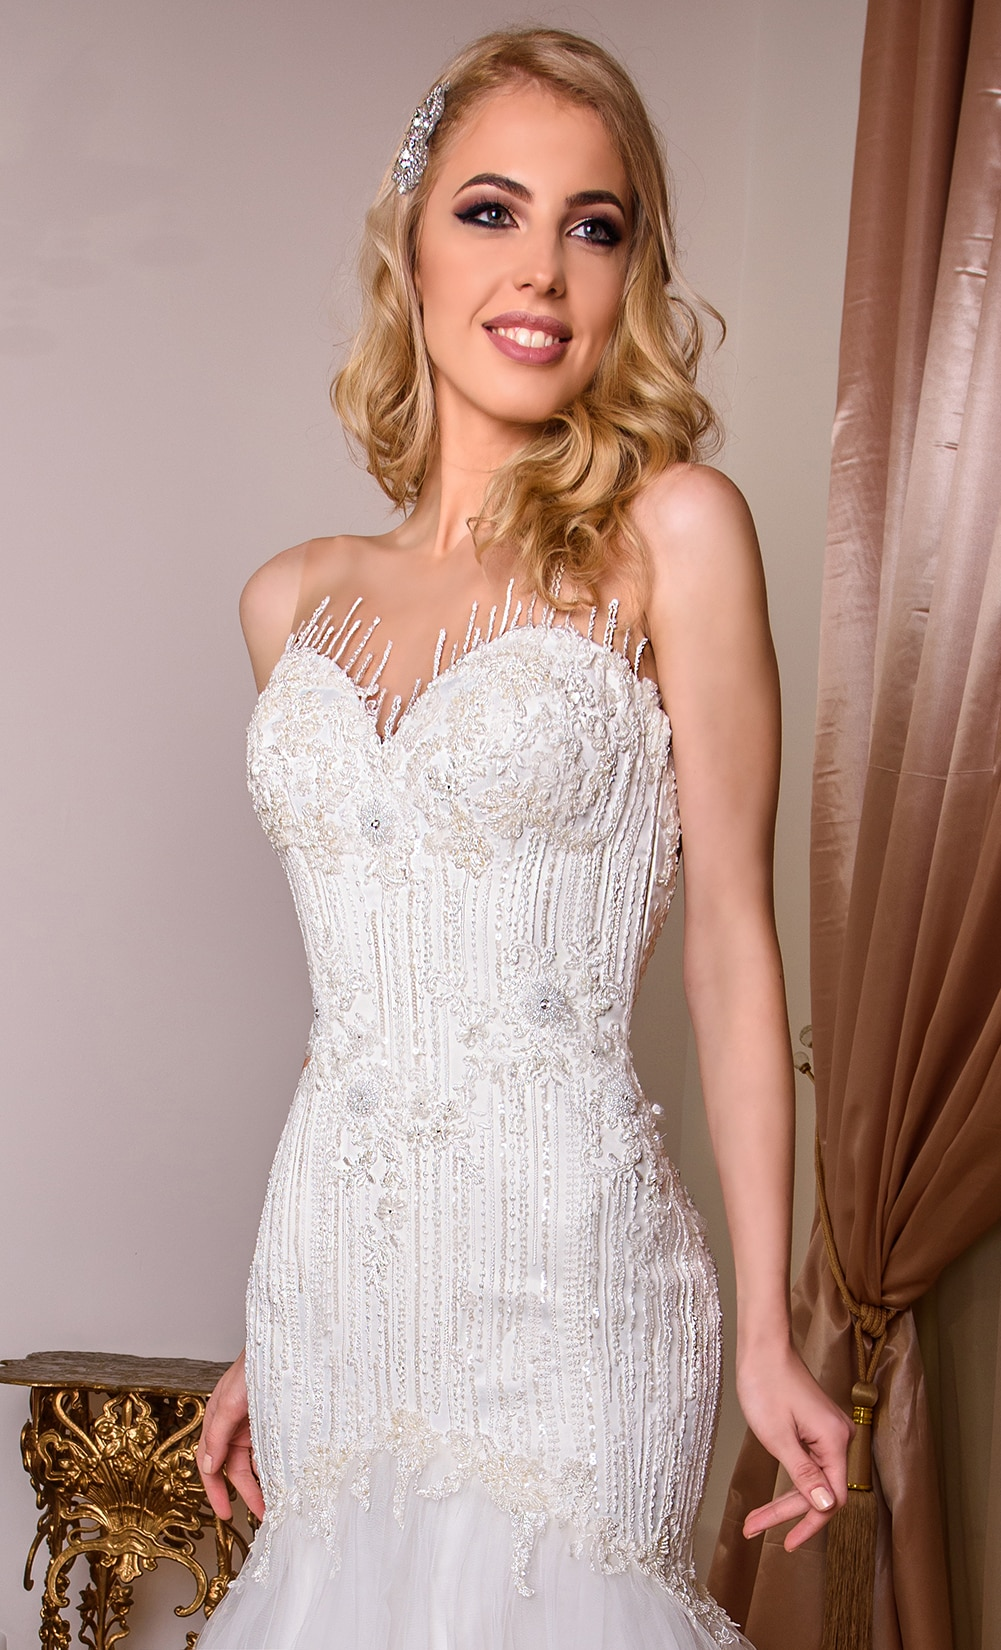 Nevada Model - Colectia Baroque - Adora Sposa (3)